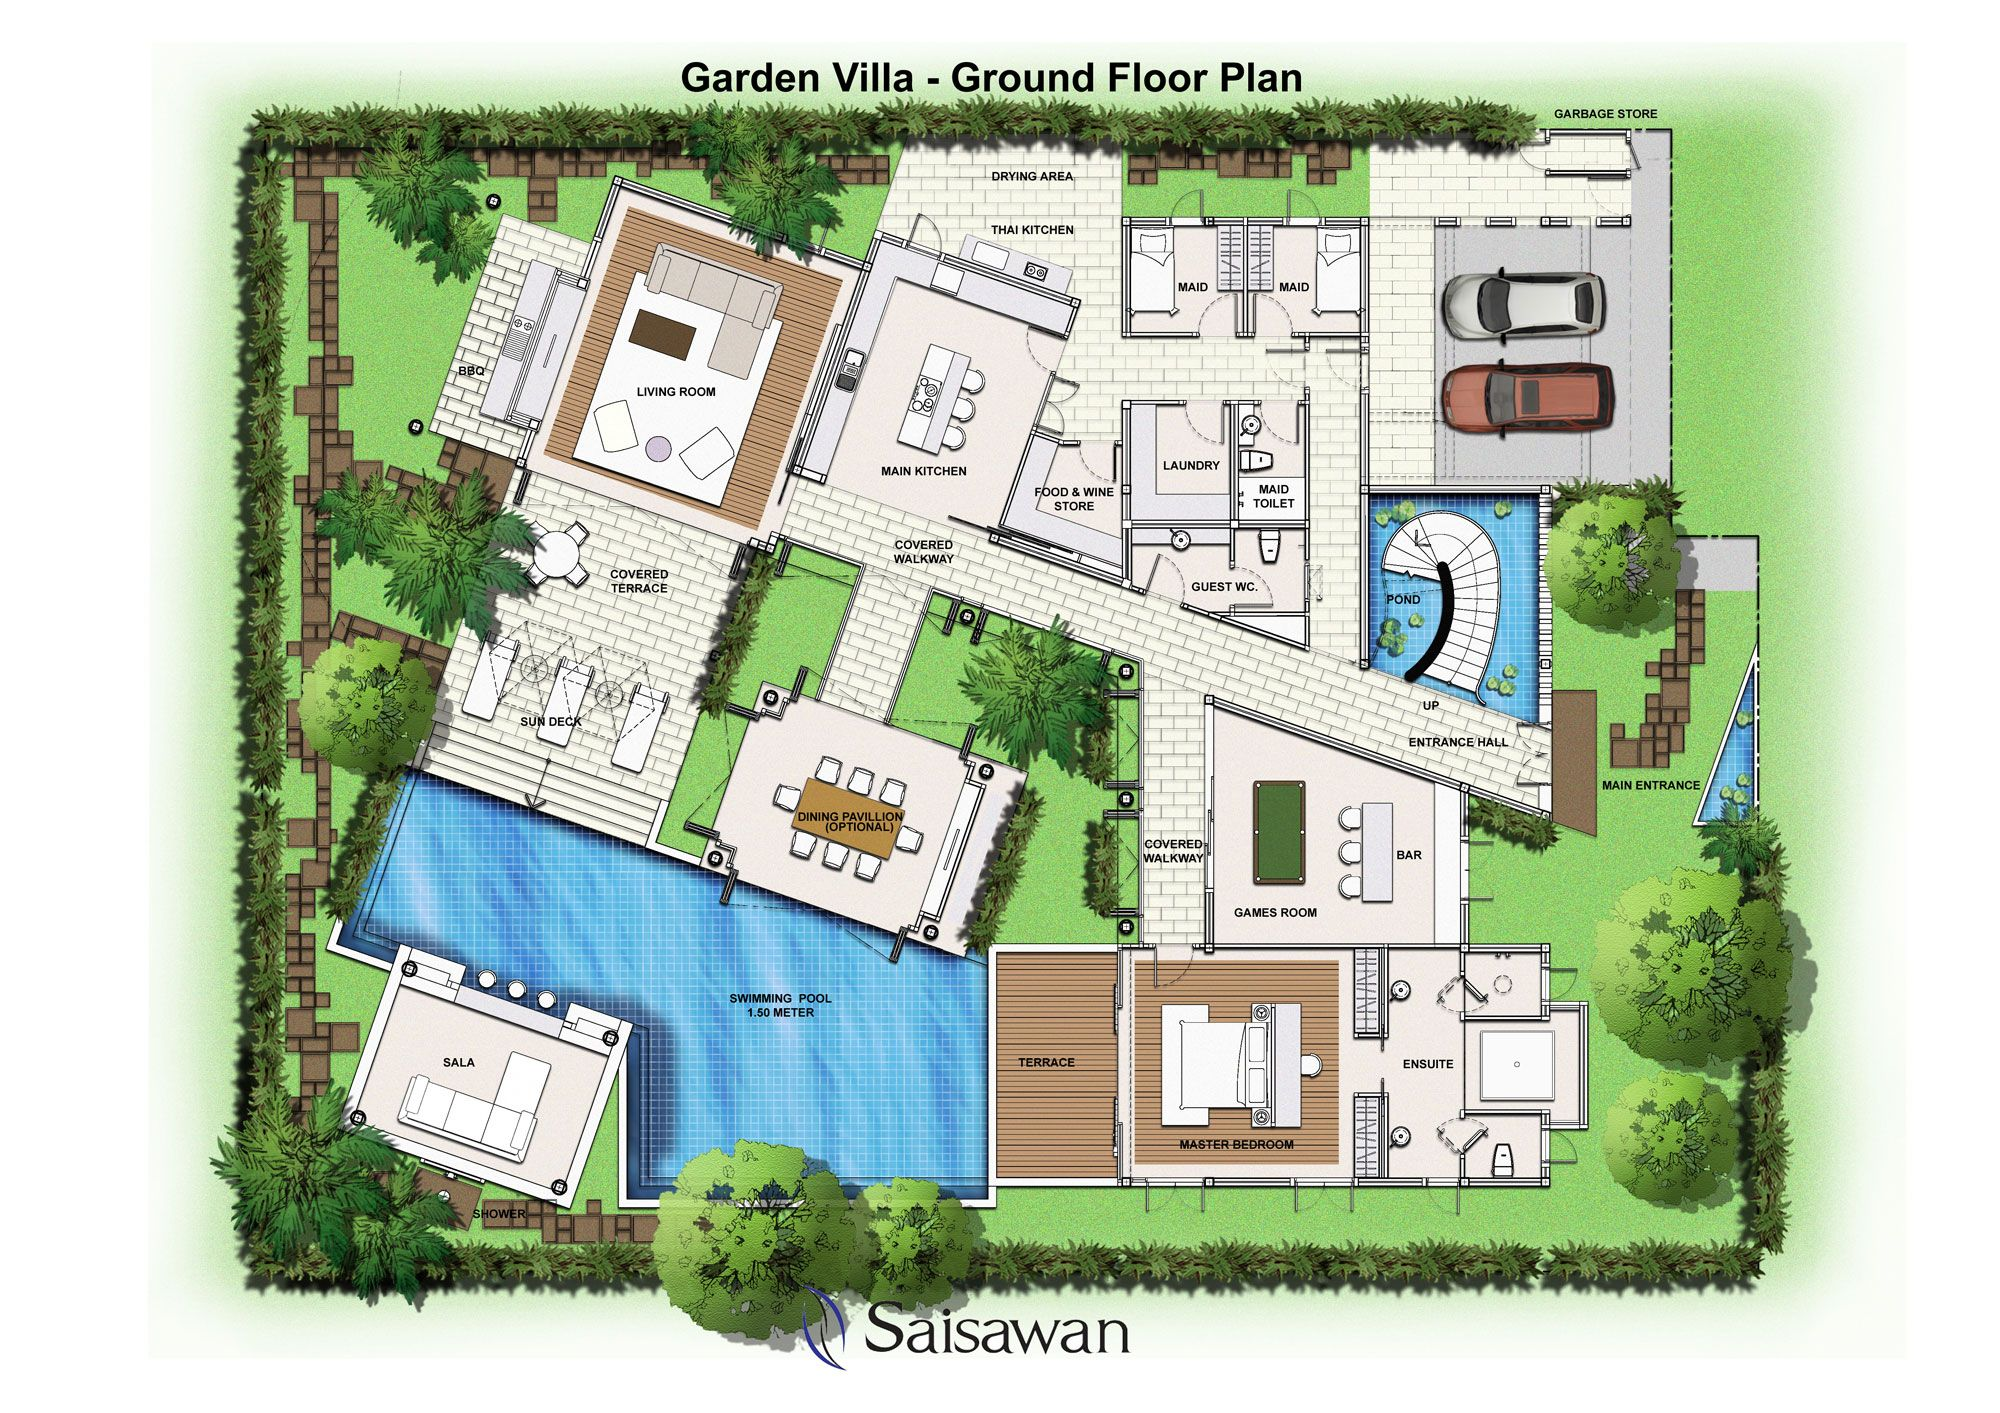 Saisawan garden villas ground floor plan house plans for Garden home floor plans